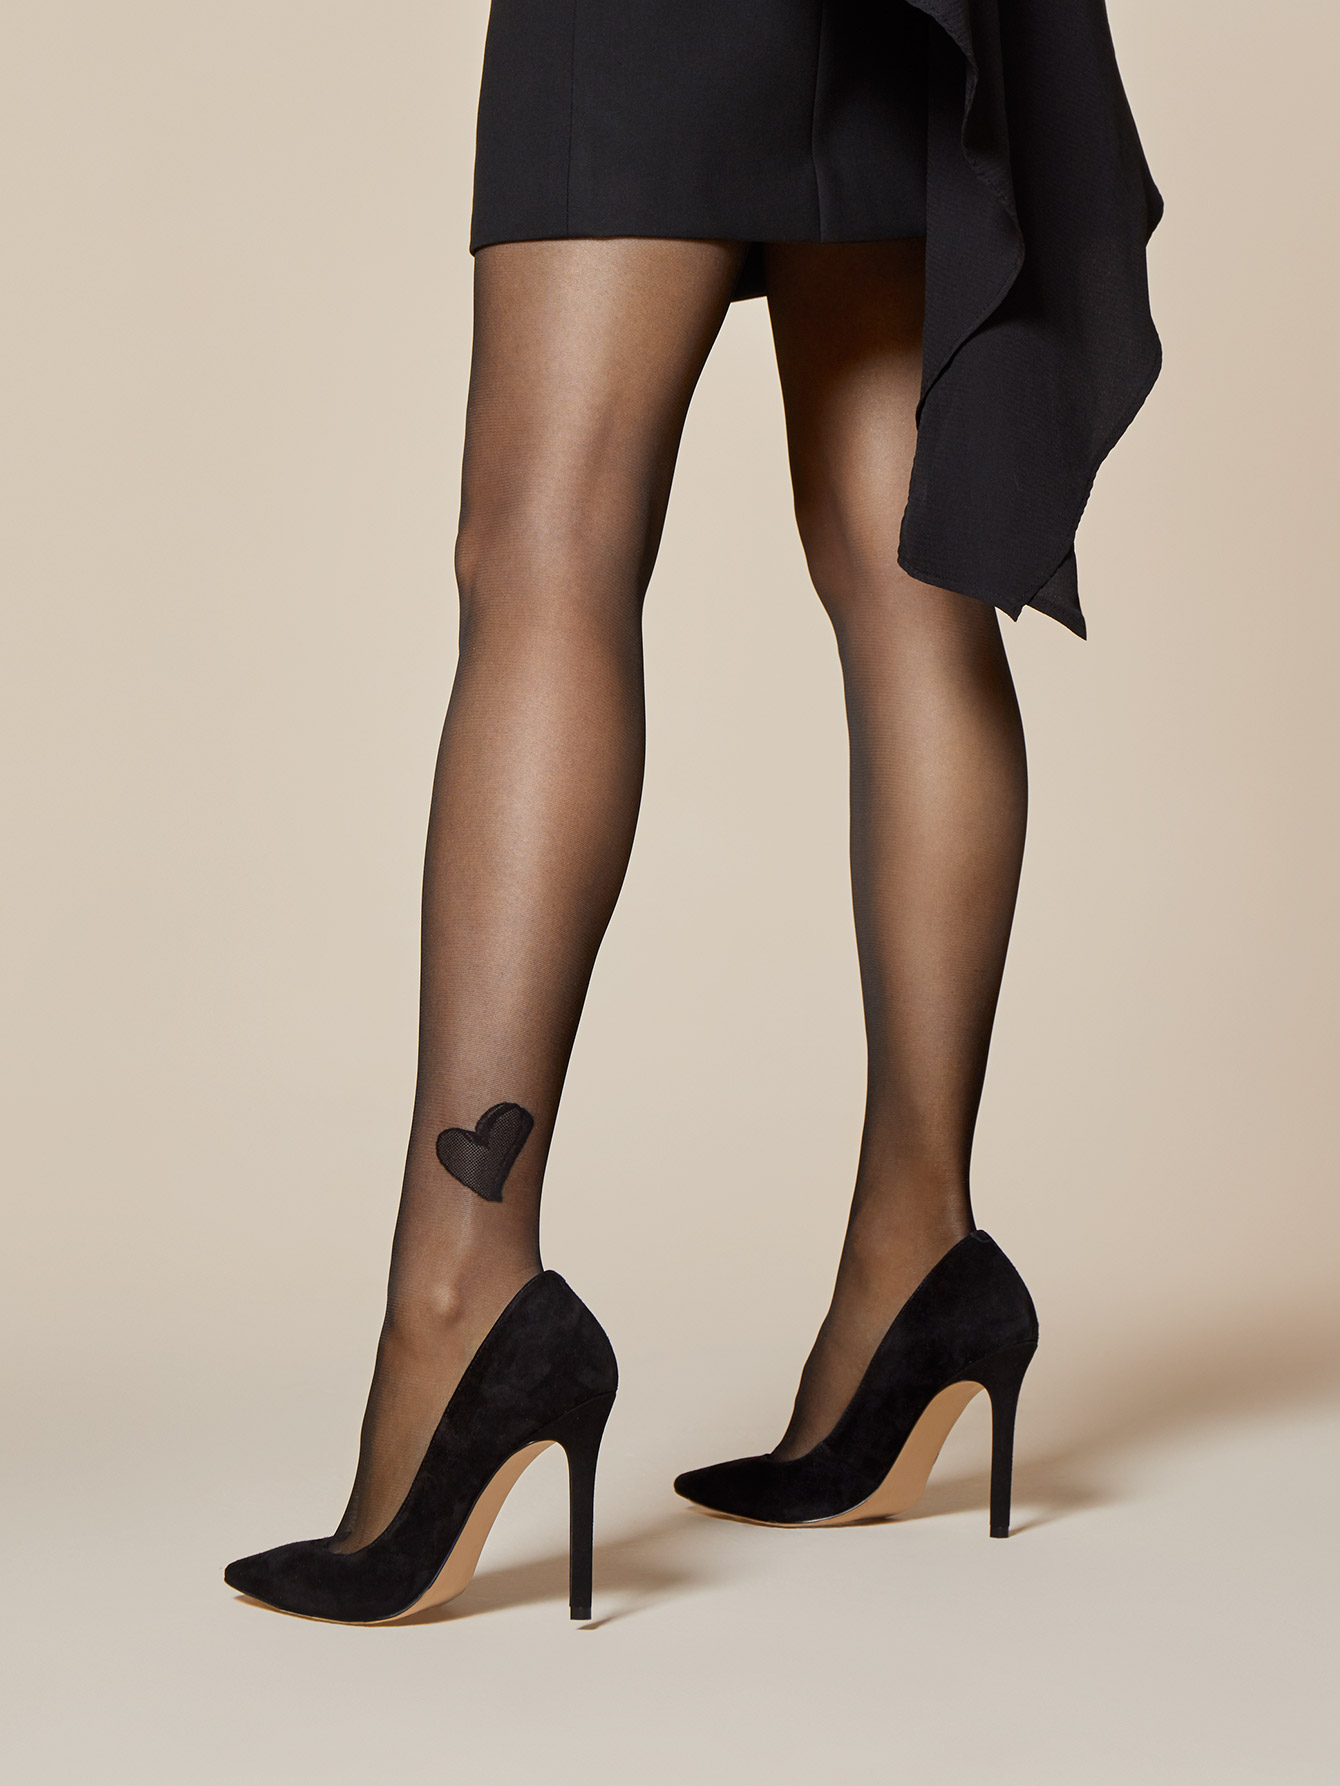 493a1357b165e Fiore Amare Heart Ankle Patterned Sheer to Waist Tights 20 Denier | eBay